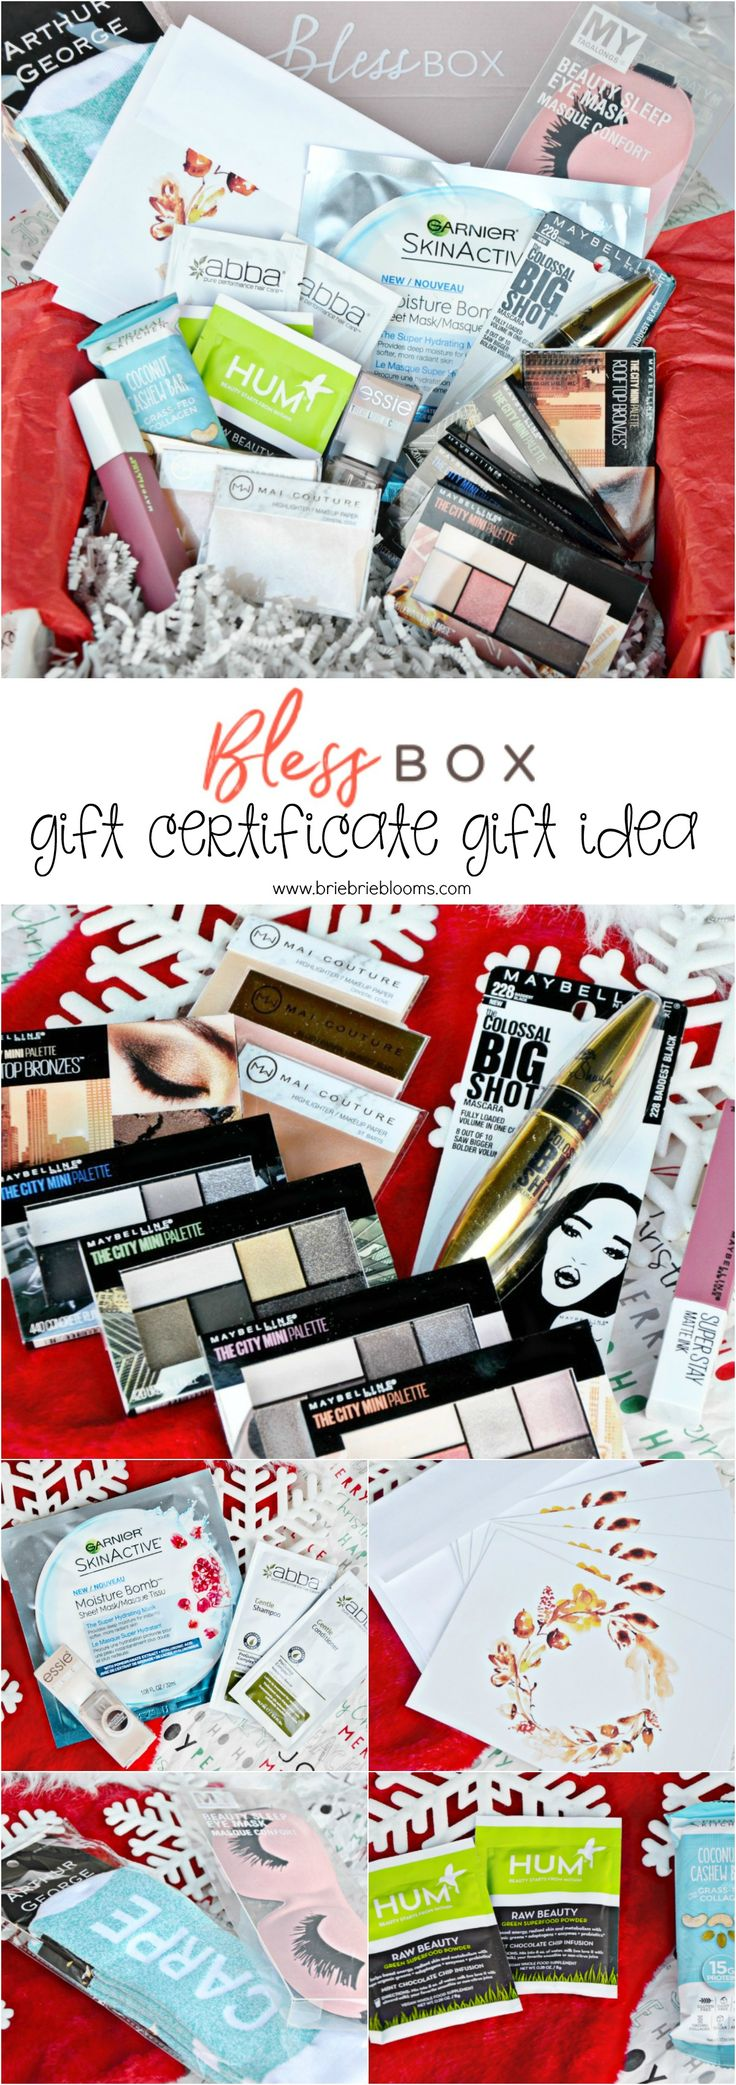 Best 25 free printable gift certificates ideas on pinterest the bless box ultimate subscription is the best gift idea for friends that love affordable beauty products gift with a free printable gift certificate xflitez Images